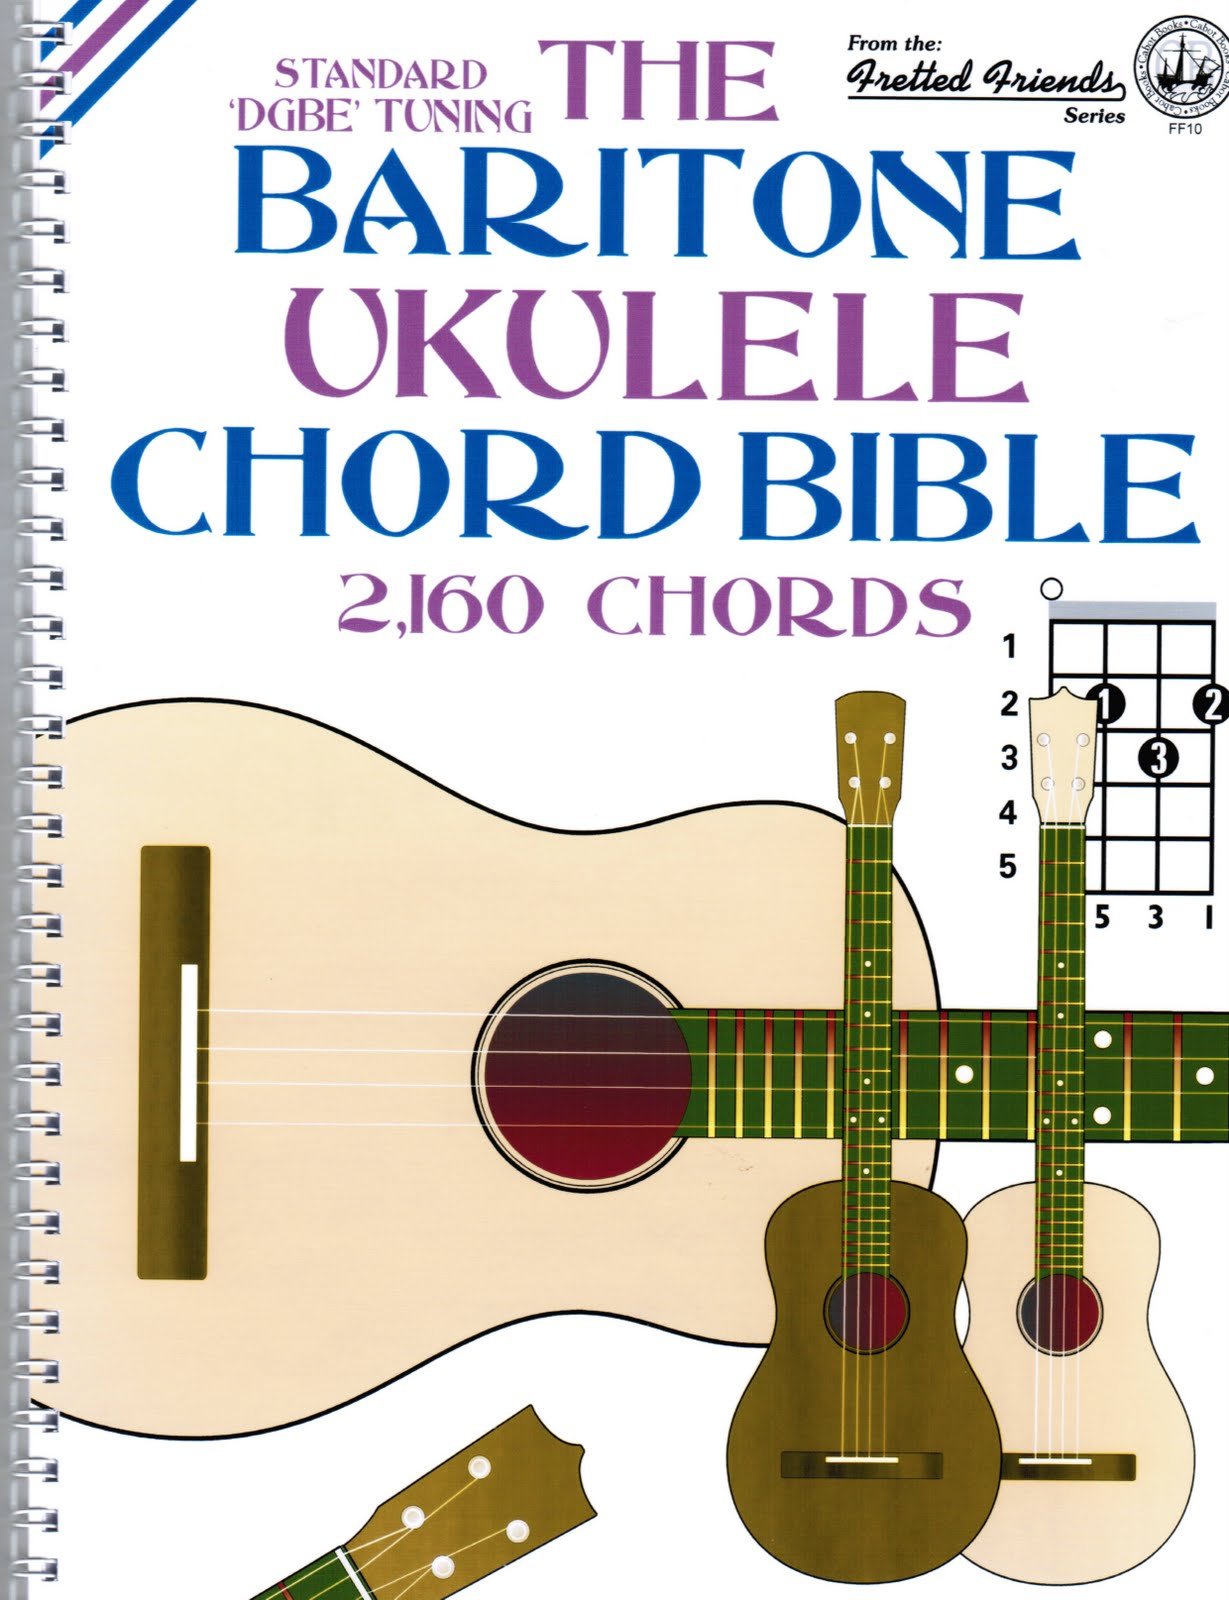 Humble baritonics october 2010 fretted friends the baritone ukulele chord bible hexwebz Image collections